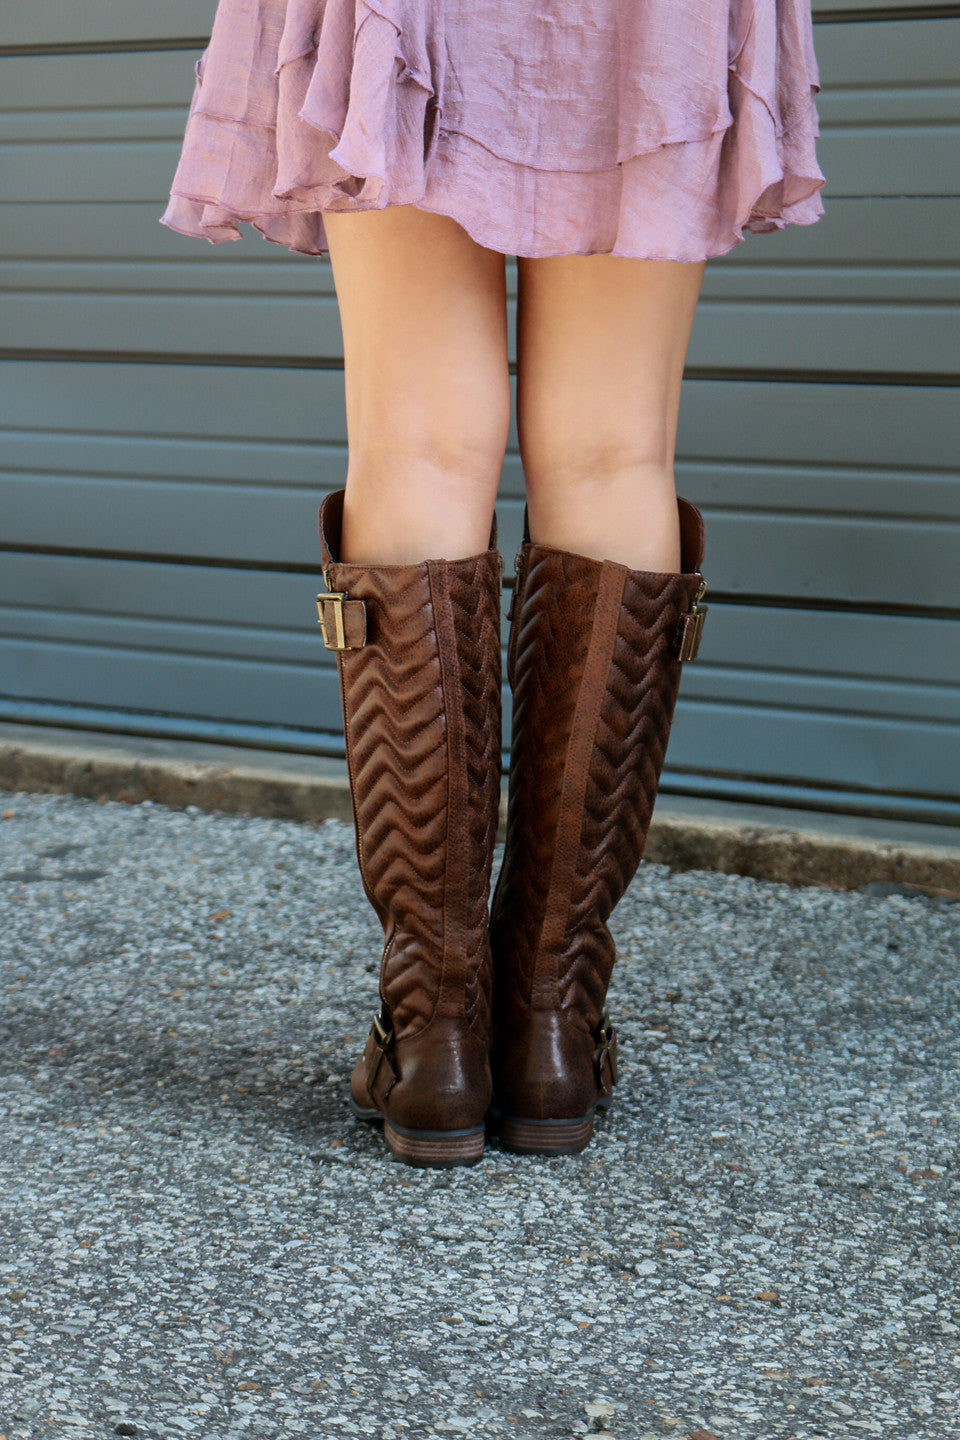 3b747a58c3c2 ... NOT RATED Berlin Bay Dark Tan Festival Boot - Amazing Lace